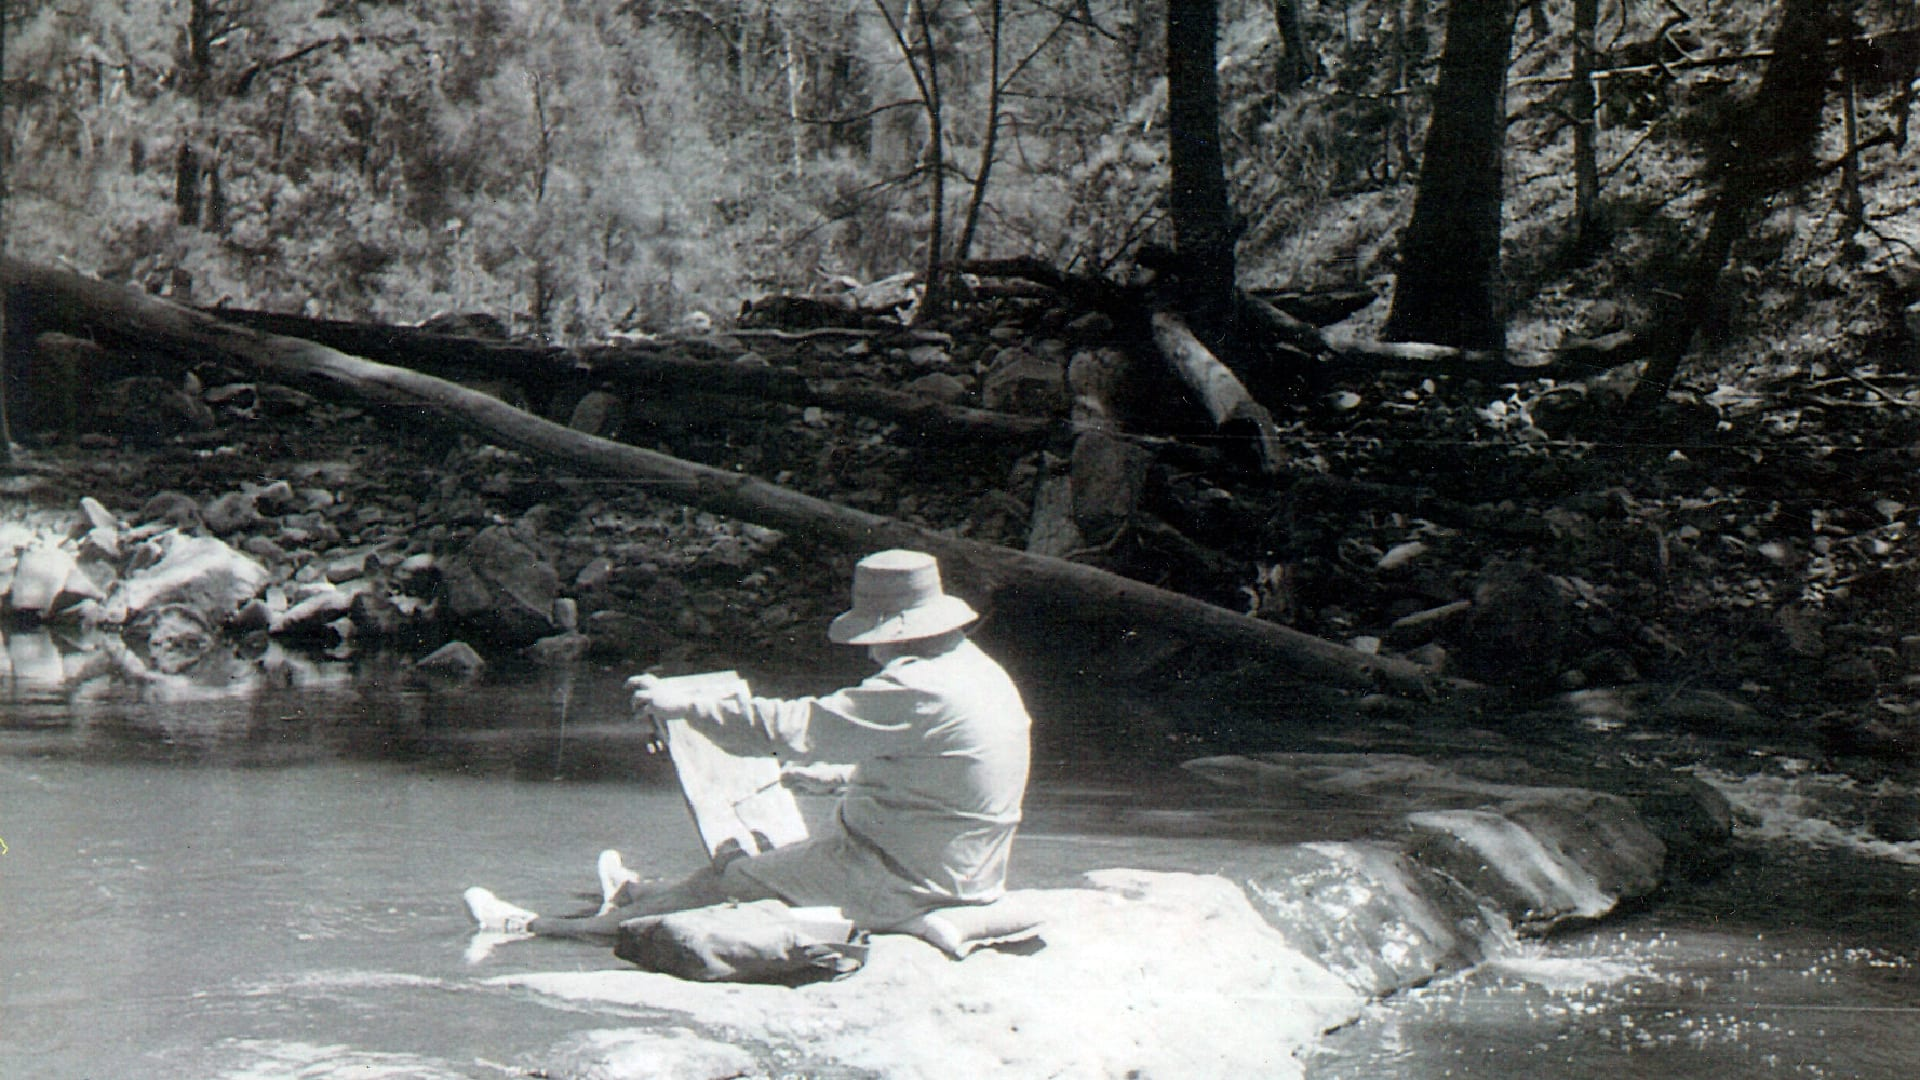 Fred Williams down at the Nattai River at The Crags, photo courtesy of the late John and Joan Stephens